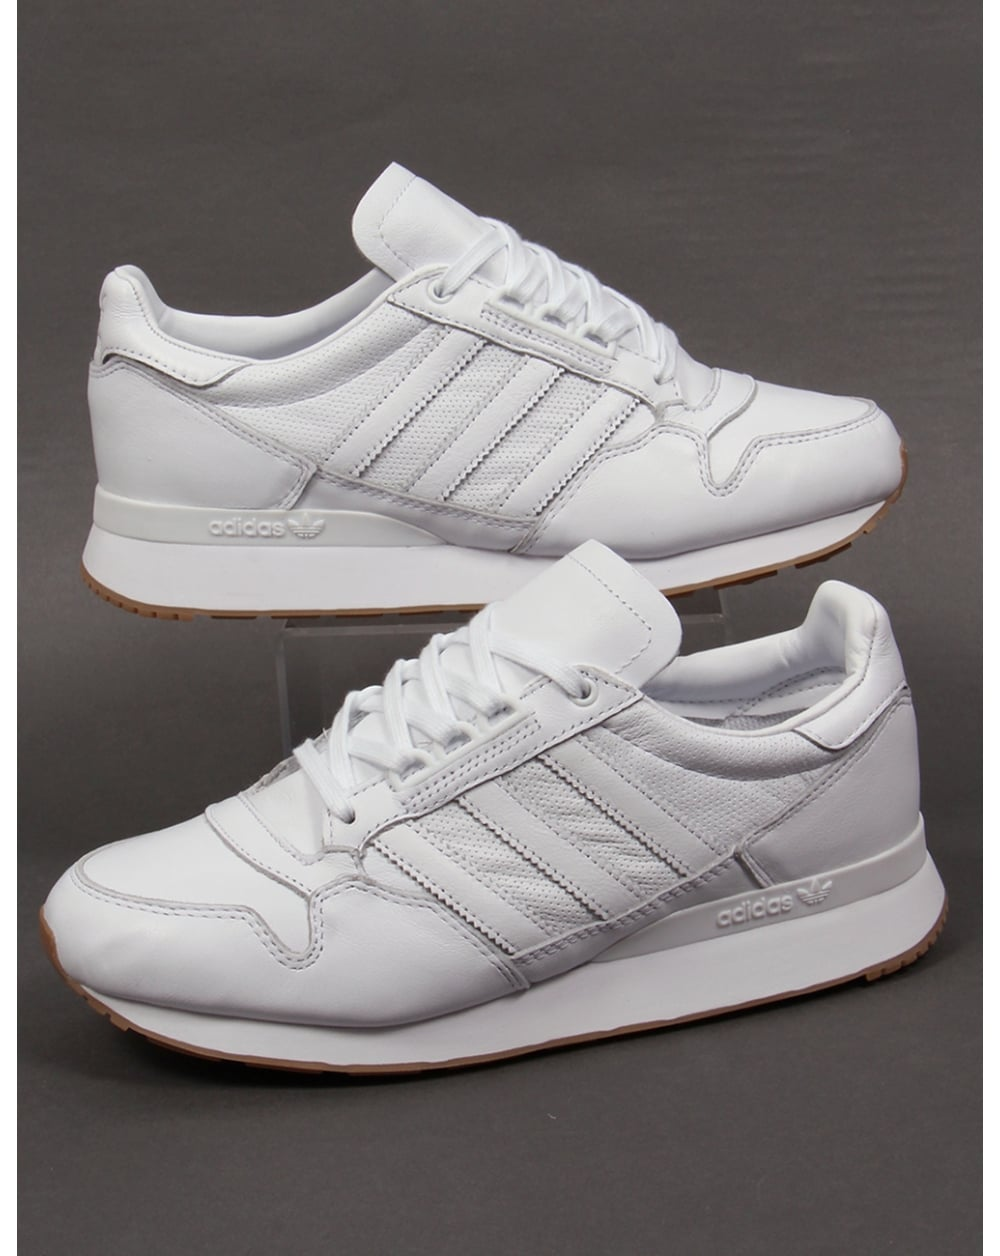 leather adidas zx trainers